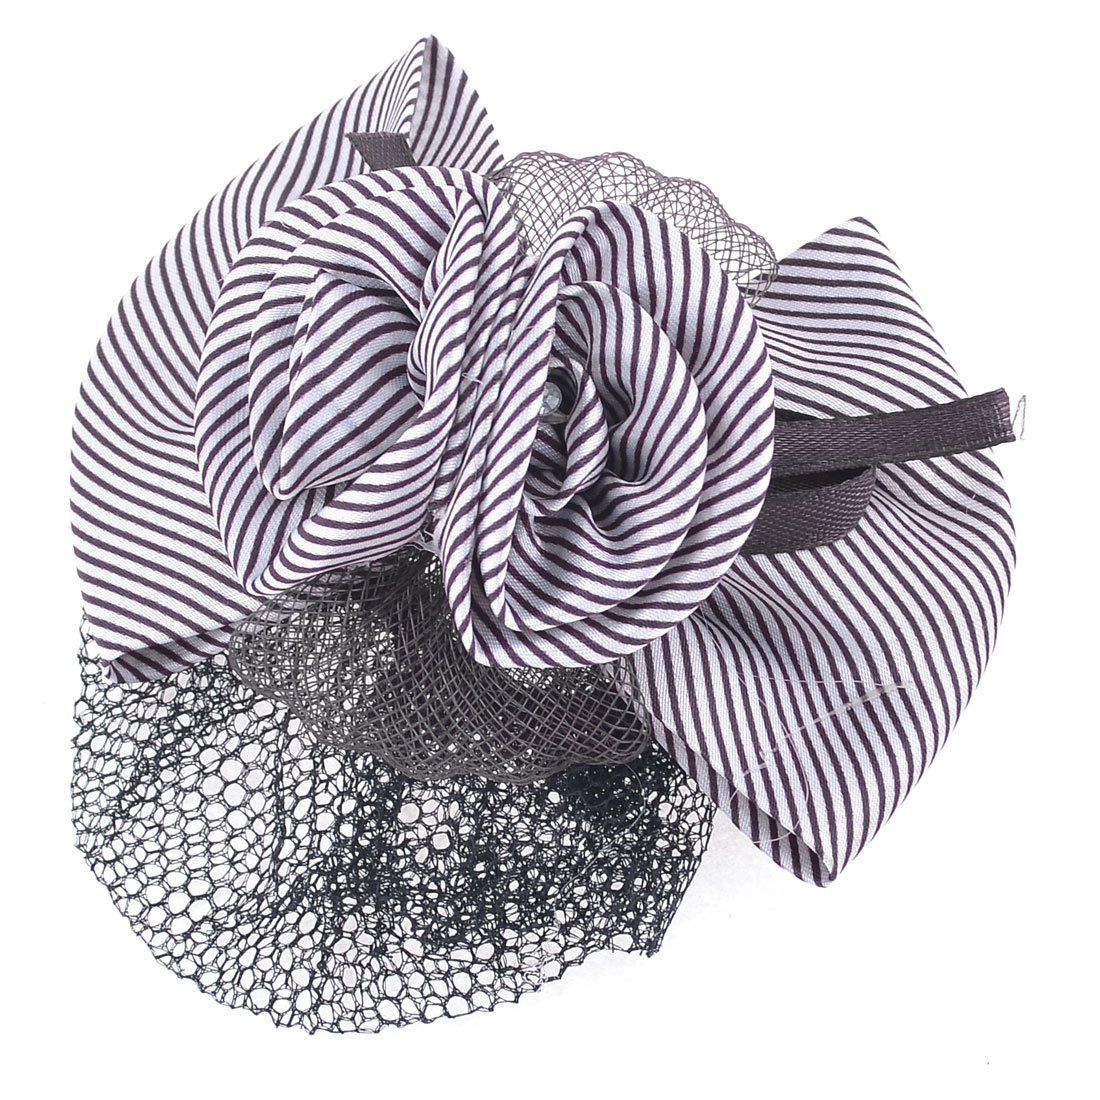 Striped Bowknot Decor Barrette Hair Clip Bun Cover Brown White w Net Snood